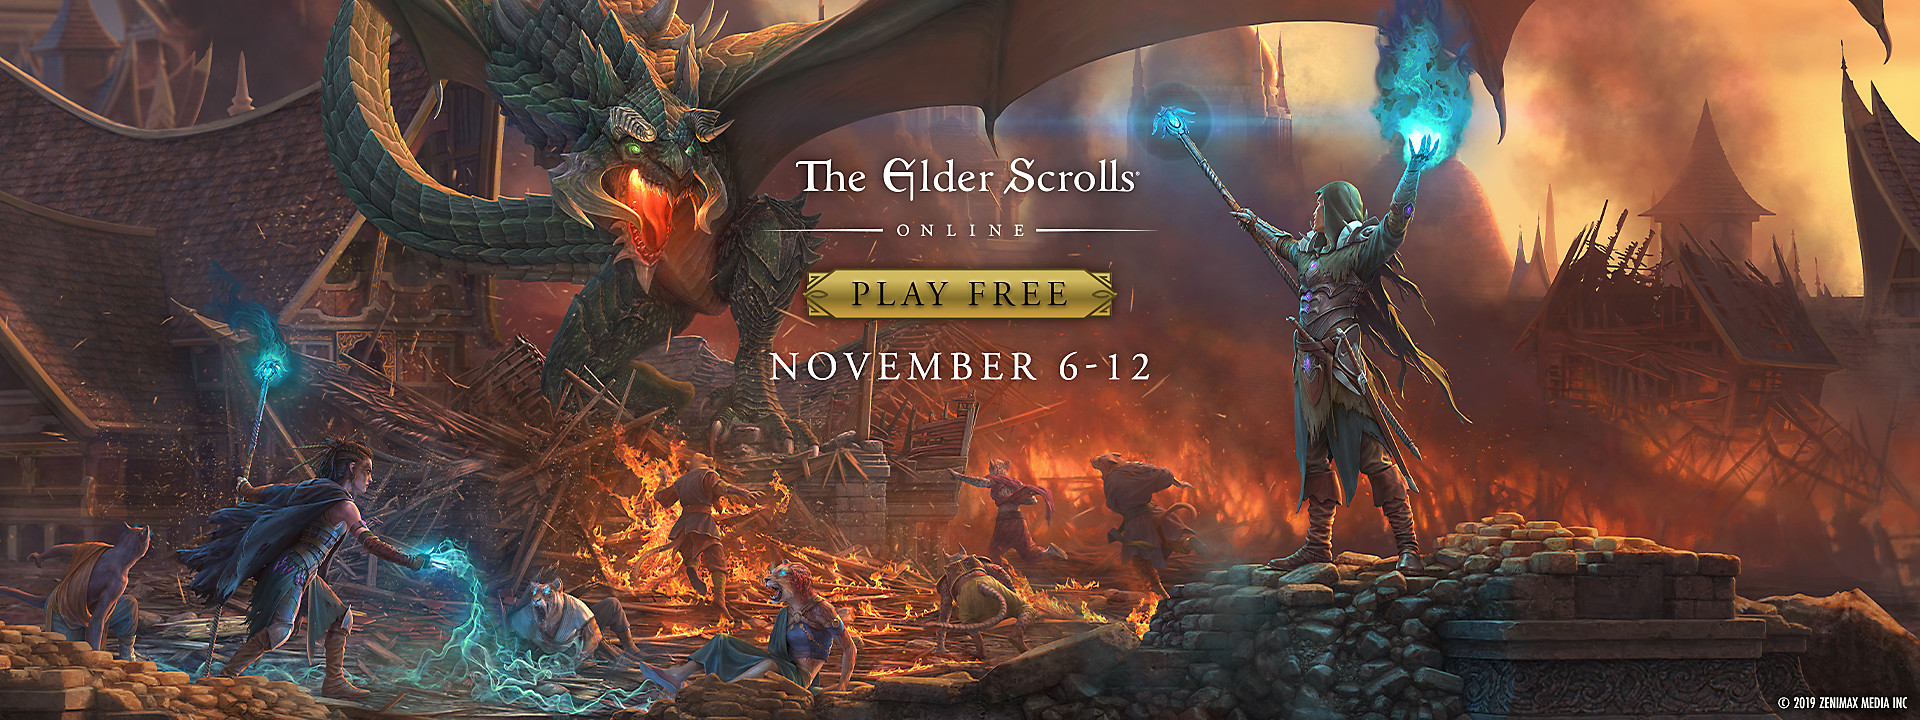 The Elder Scrolls Online - Free Play Week